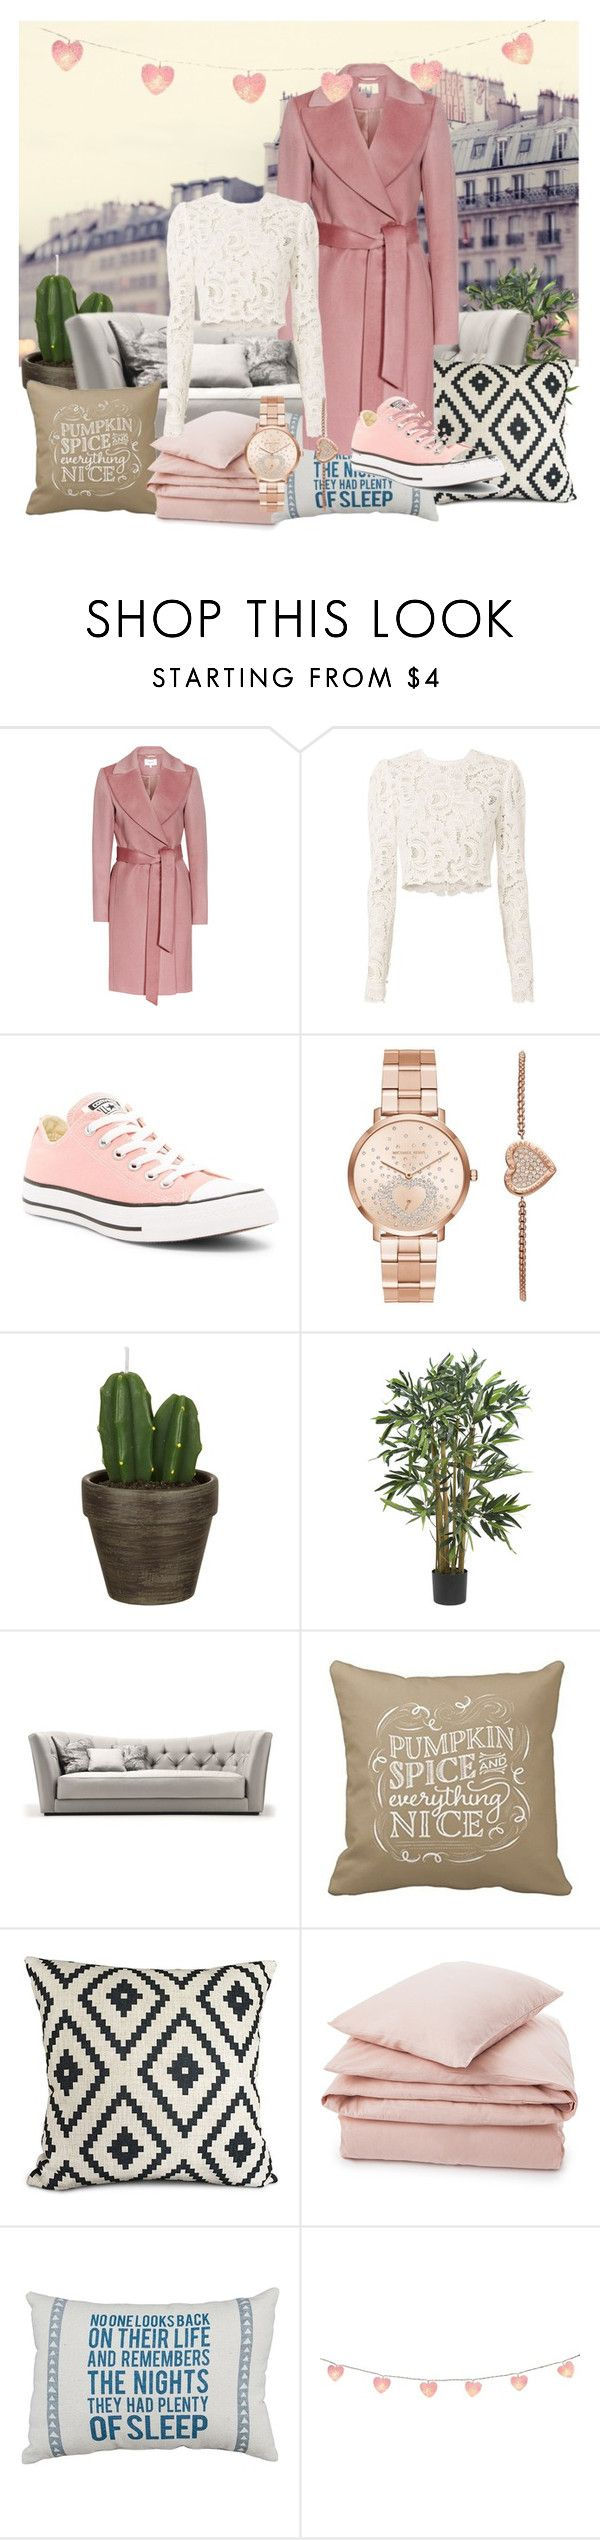 """Bez naslova #6"" by senija-46 ❤ liked on Polyvore featuring A.L.C., Converse, Michael Kors, John Lewis and Lexington"